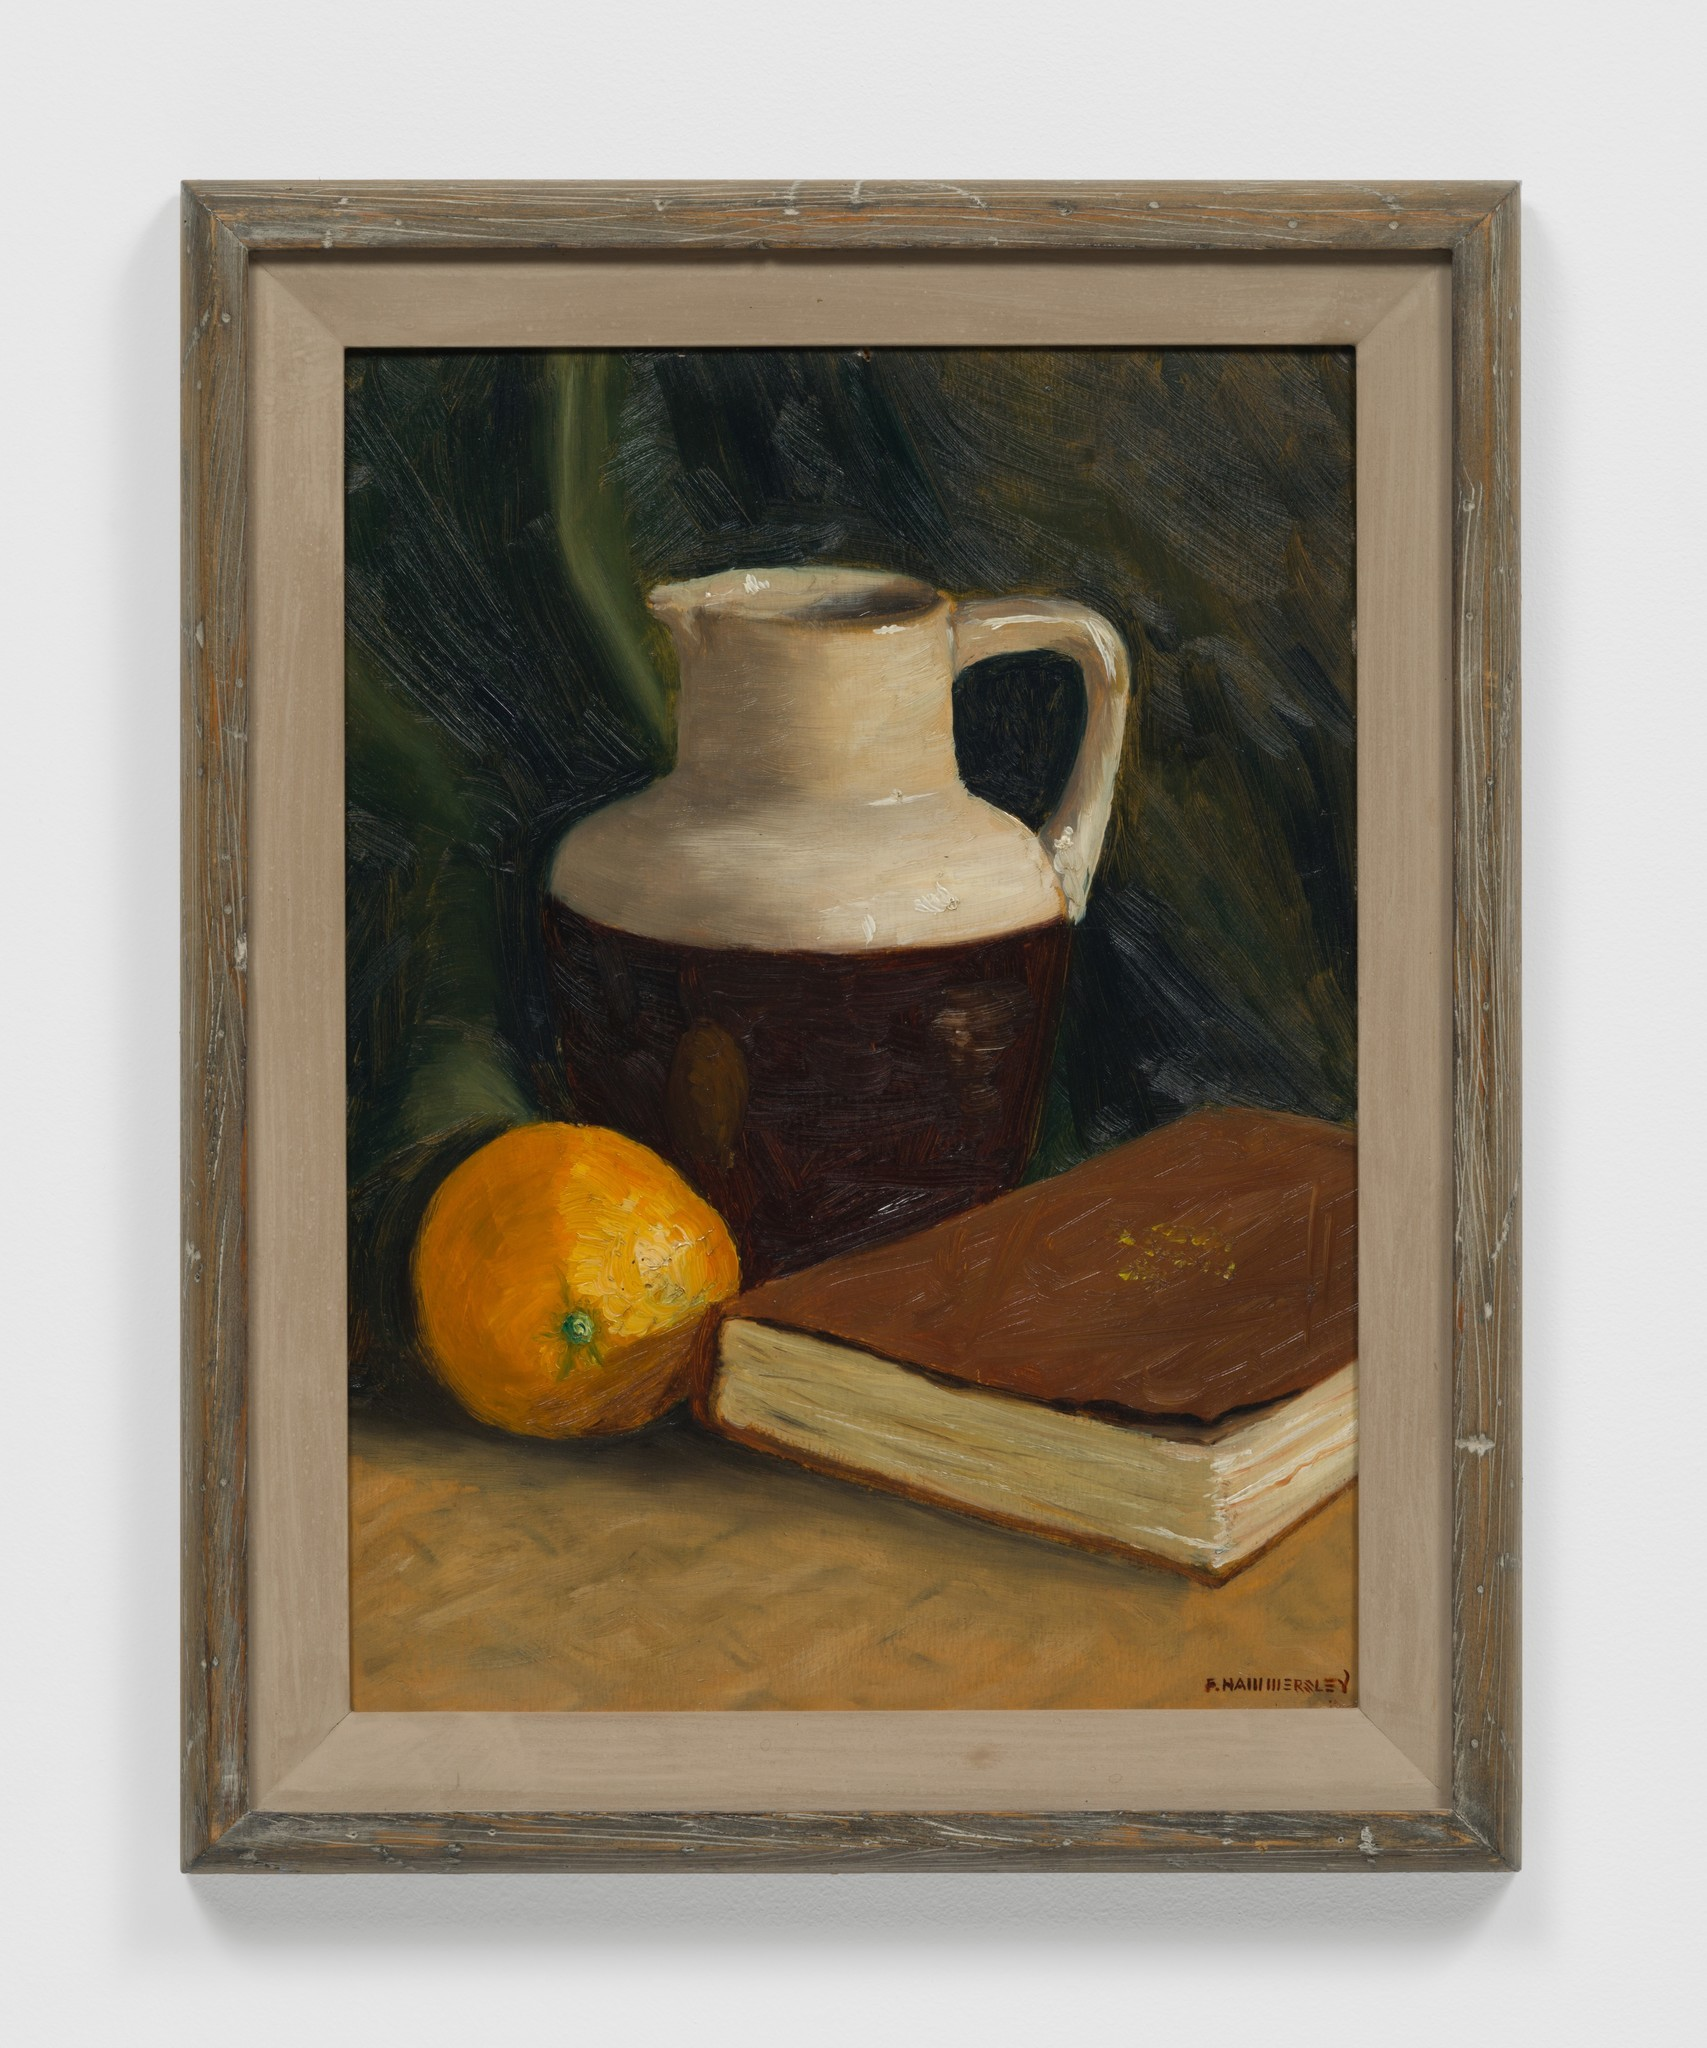 """""""First Still Life (Ft. Hall, Idaho),"""" 1937, oil on upson board in artist-made frame, 19.5 inches by 15.5 inches"""